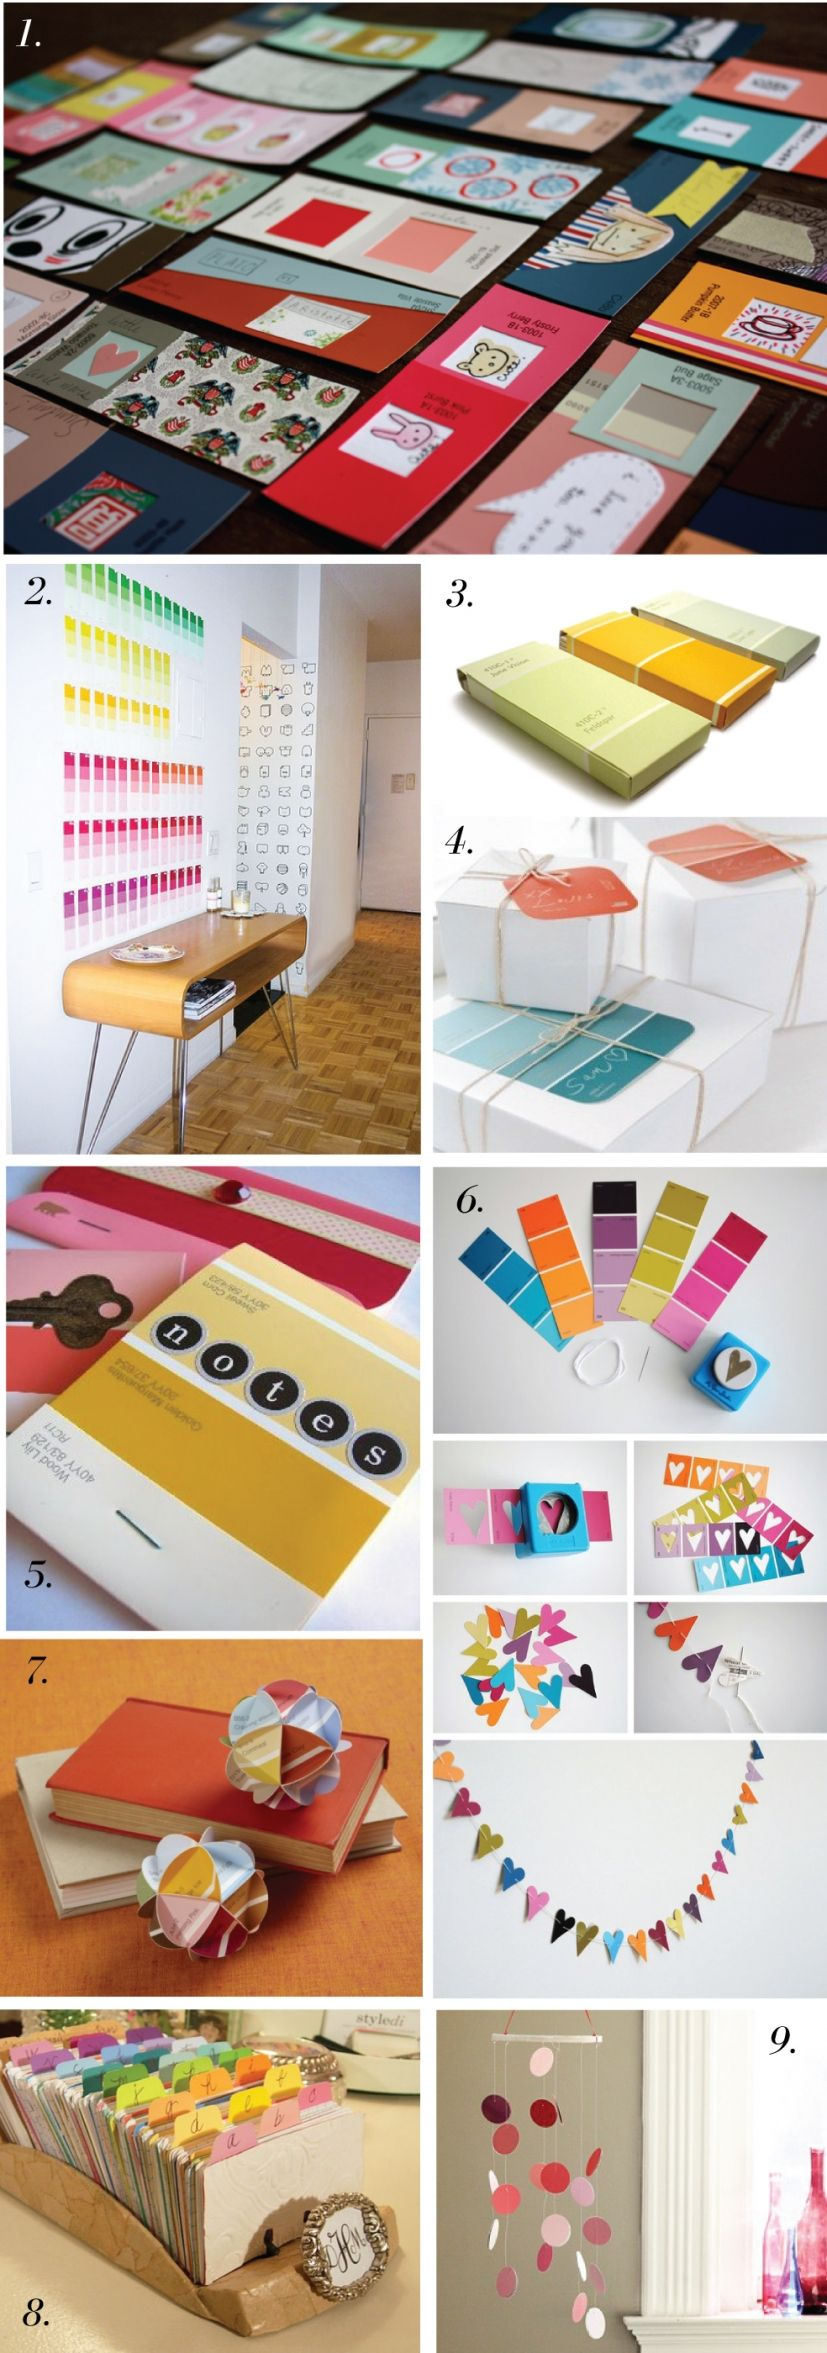 uses for paint chips // usos para las muestras de pintura